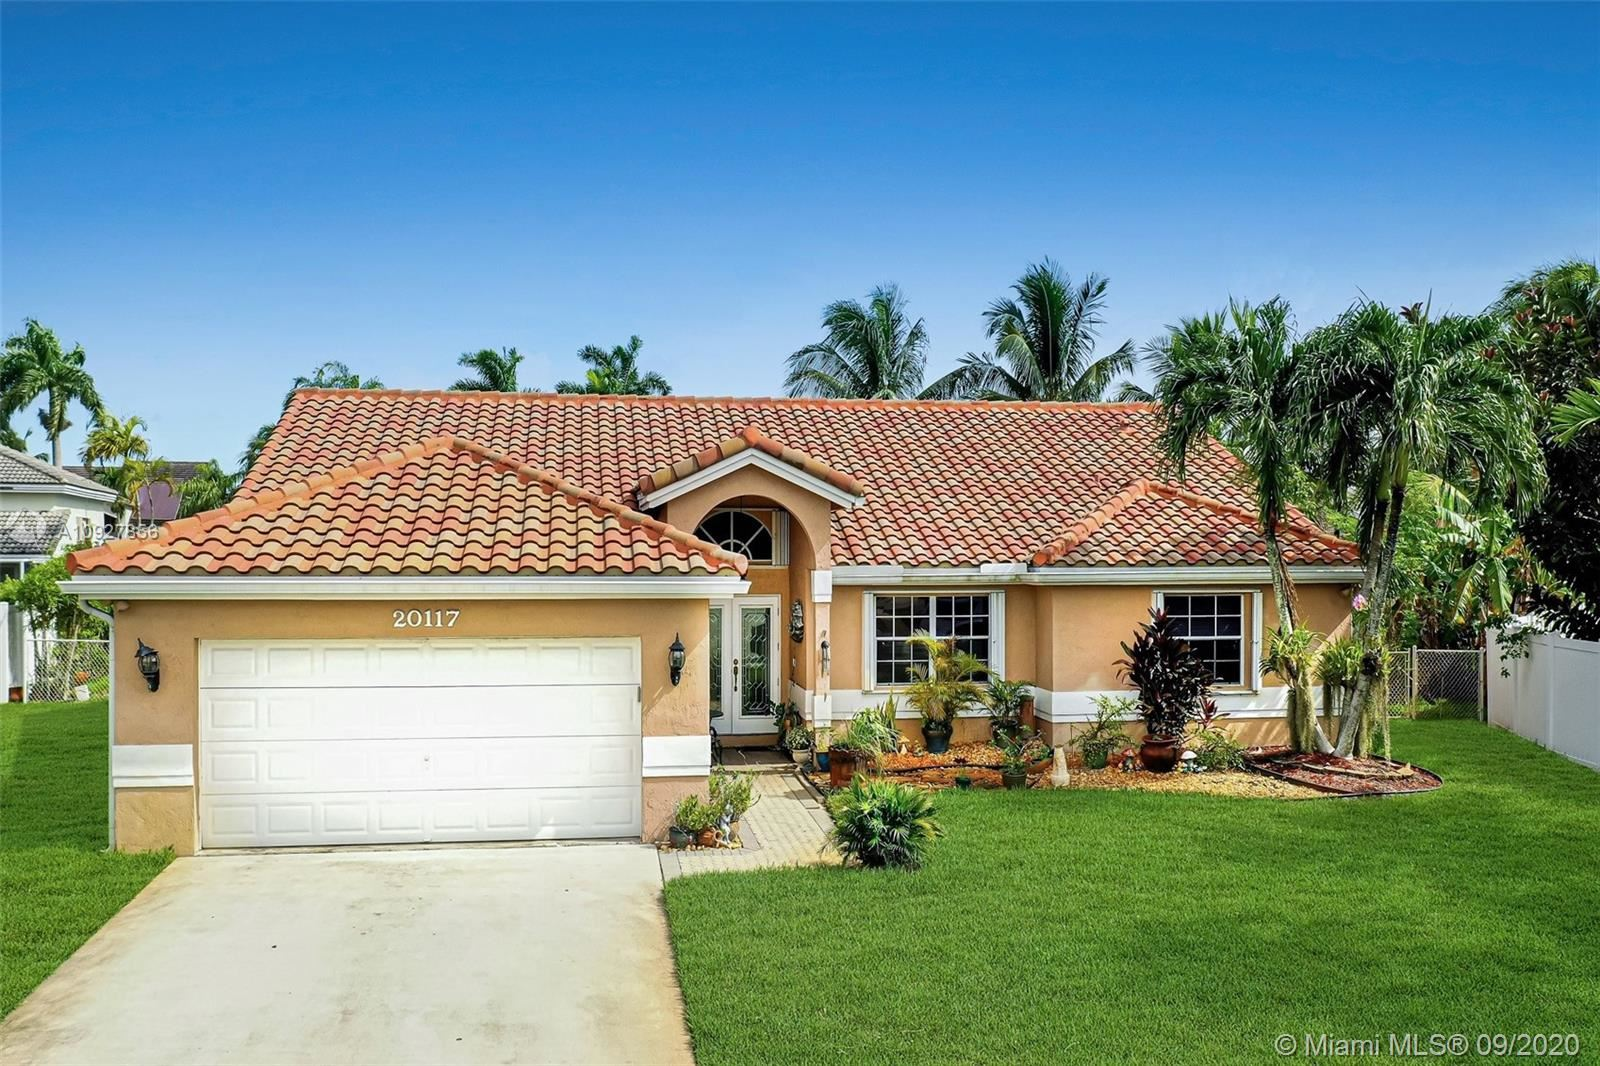 Photo of 20117 NW 9th Ct, Pembroke Pines, FL 33029 (MLS # A10927856)